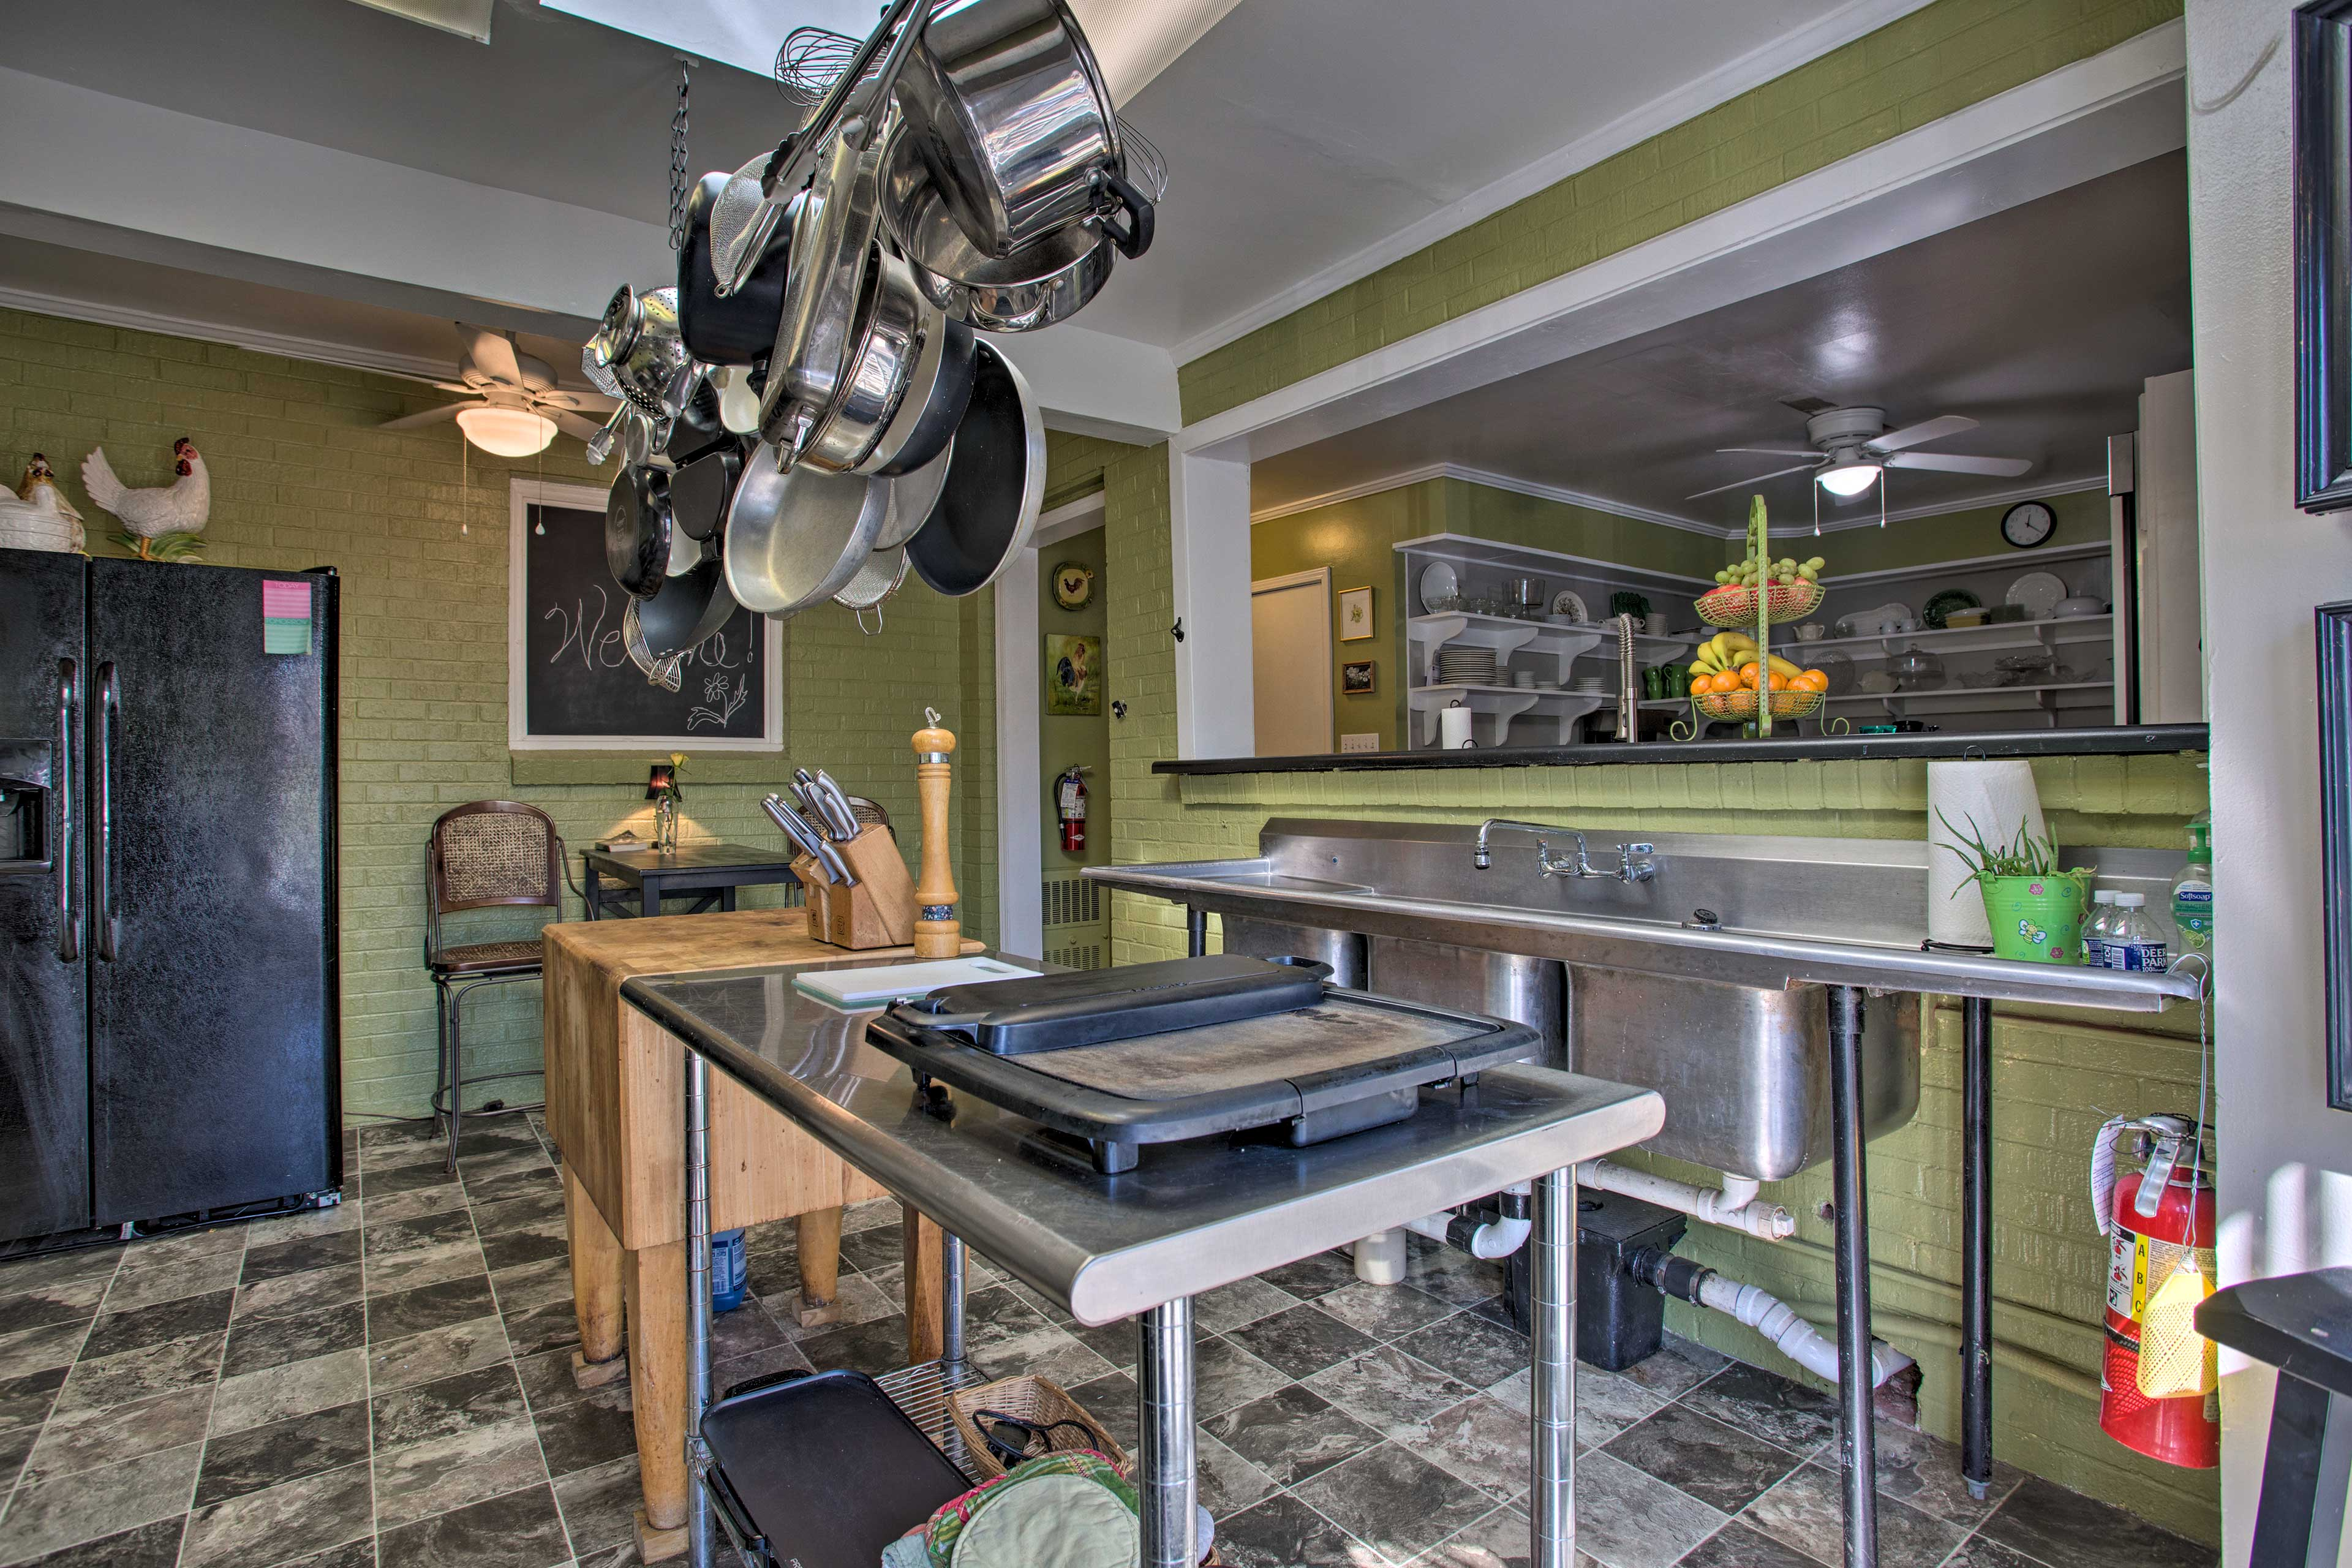 Amenities include a dishwasher, coffeemaker, toaster, microwave & more!